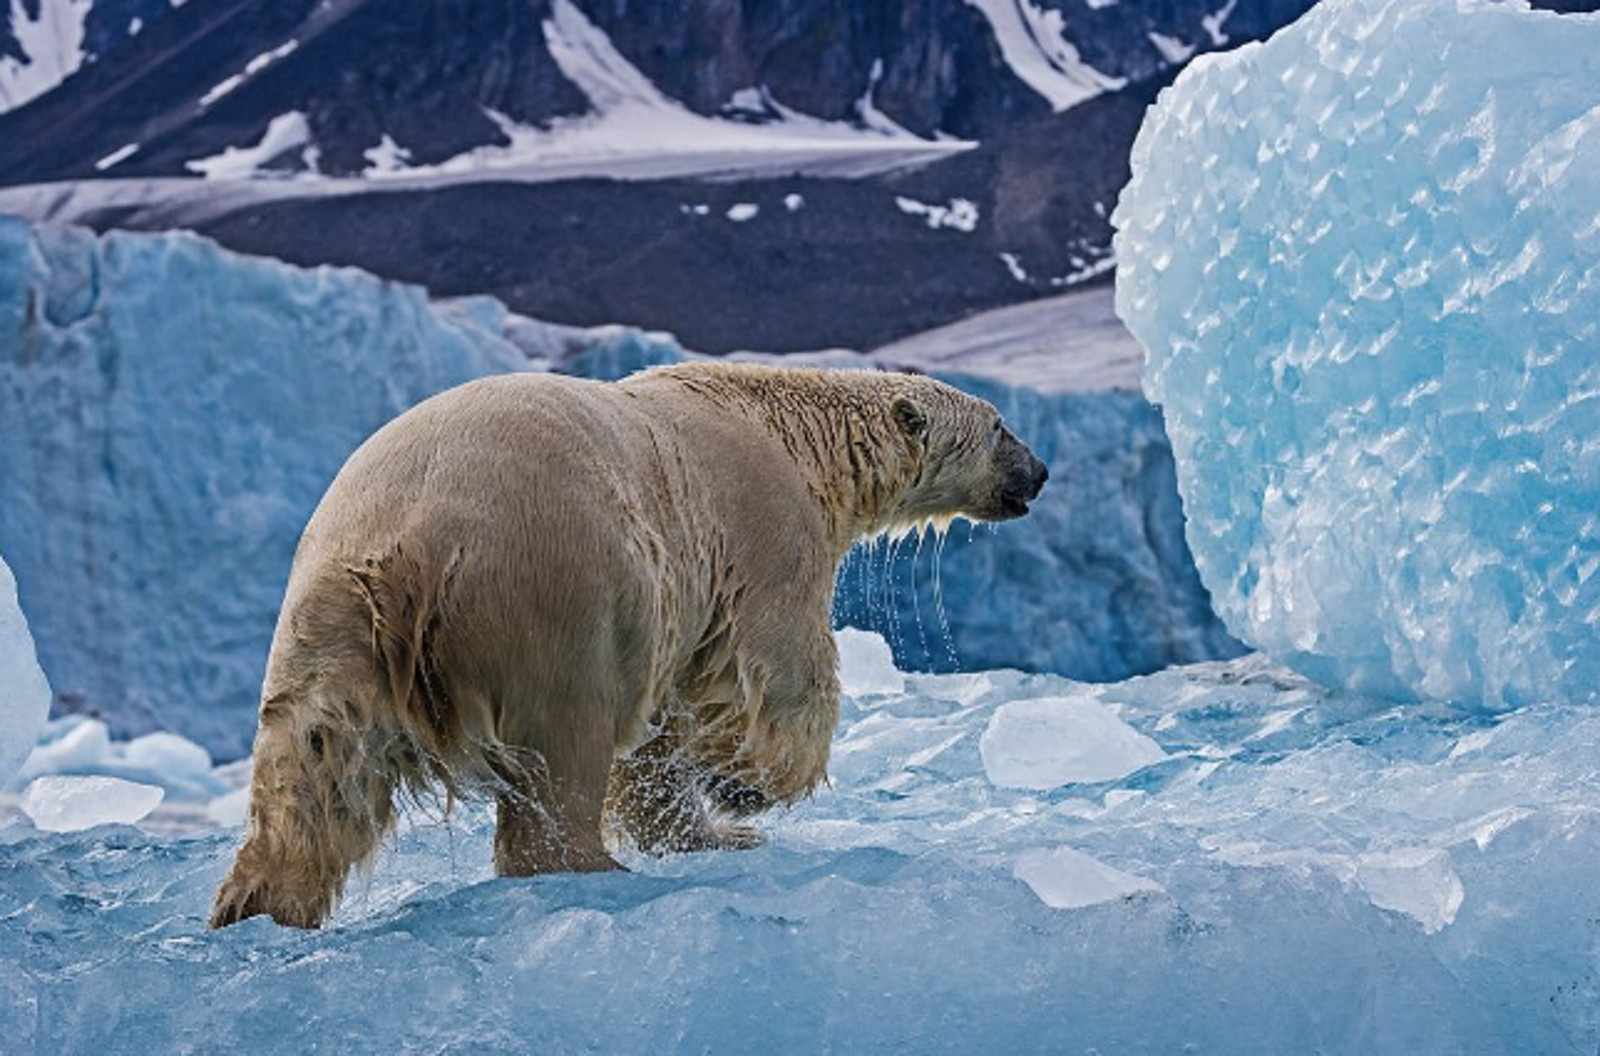 99% of Glaciers are Receding and Stranding Animals – How We Can Stop This With One Choice